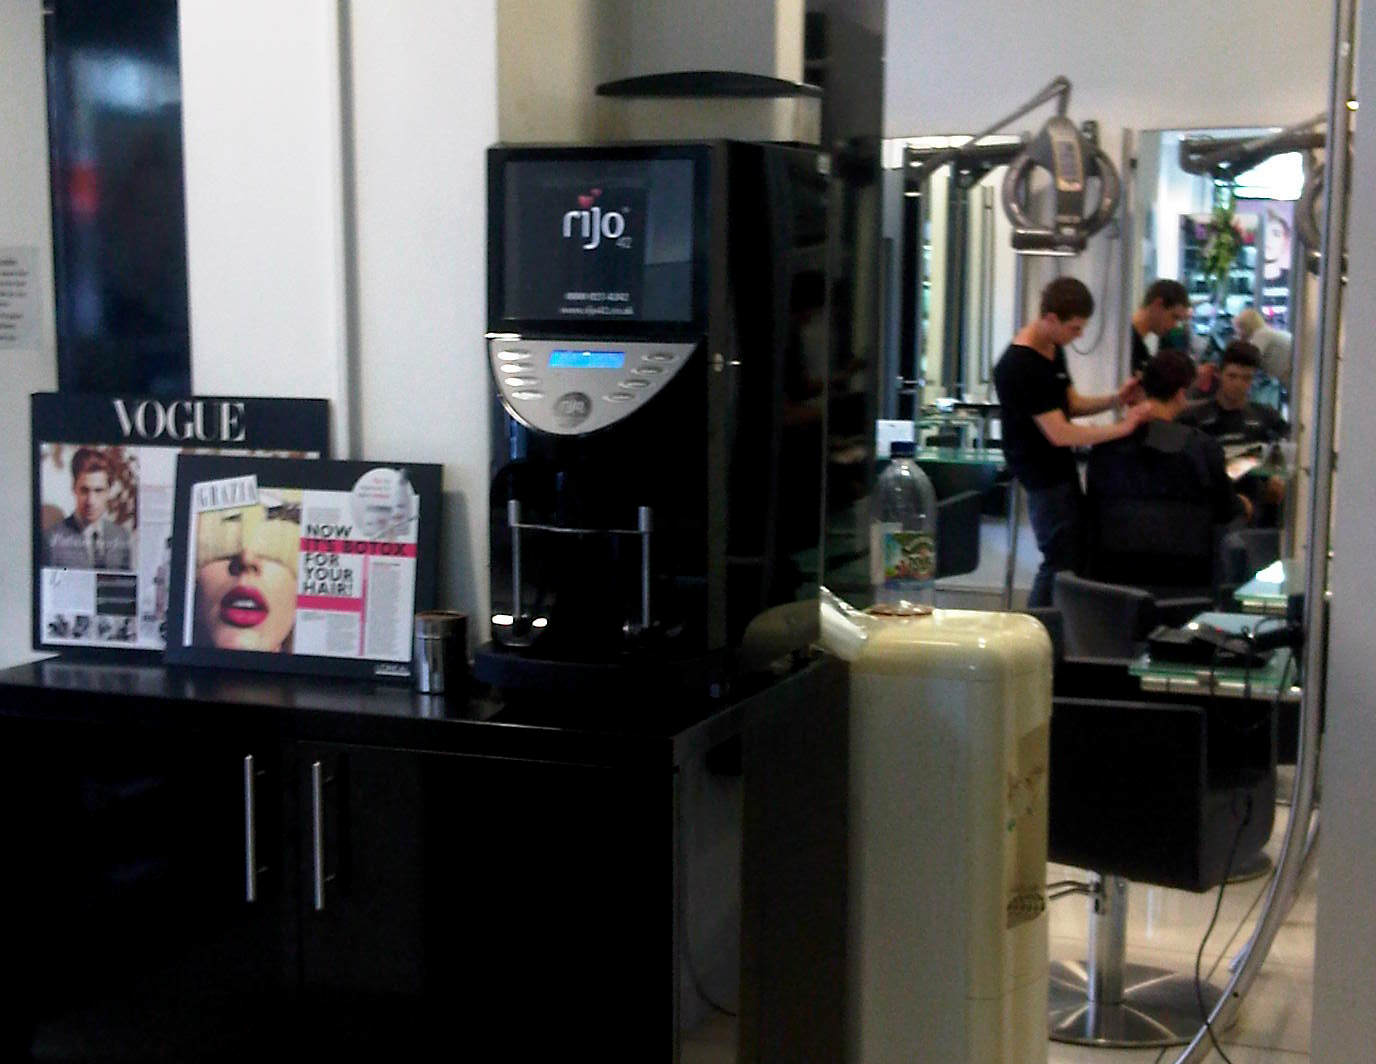 rijo42 Brasil Commercial Coffee Machine At Toni & Guy